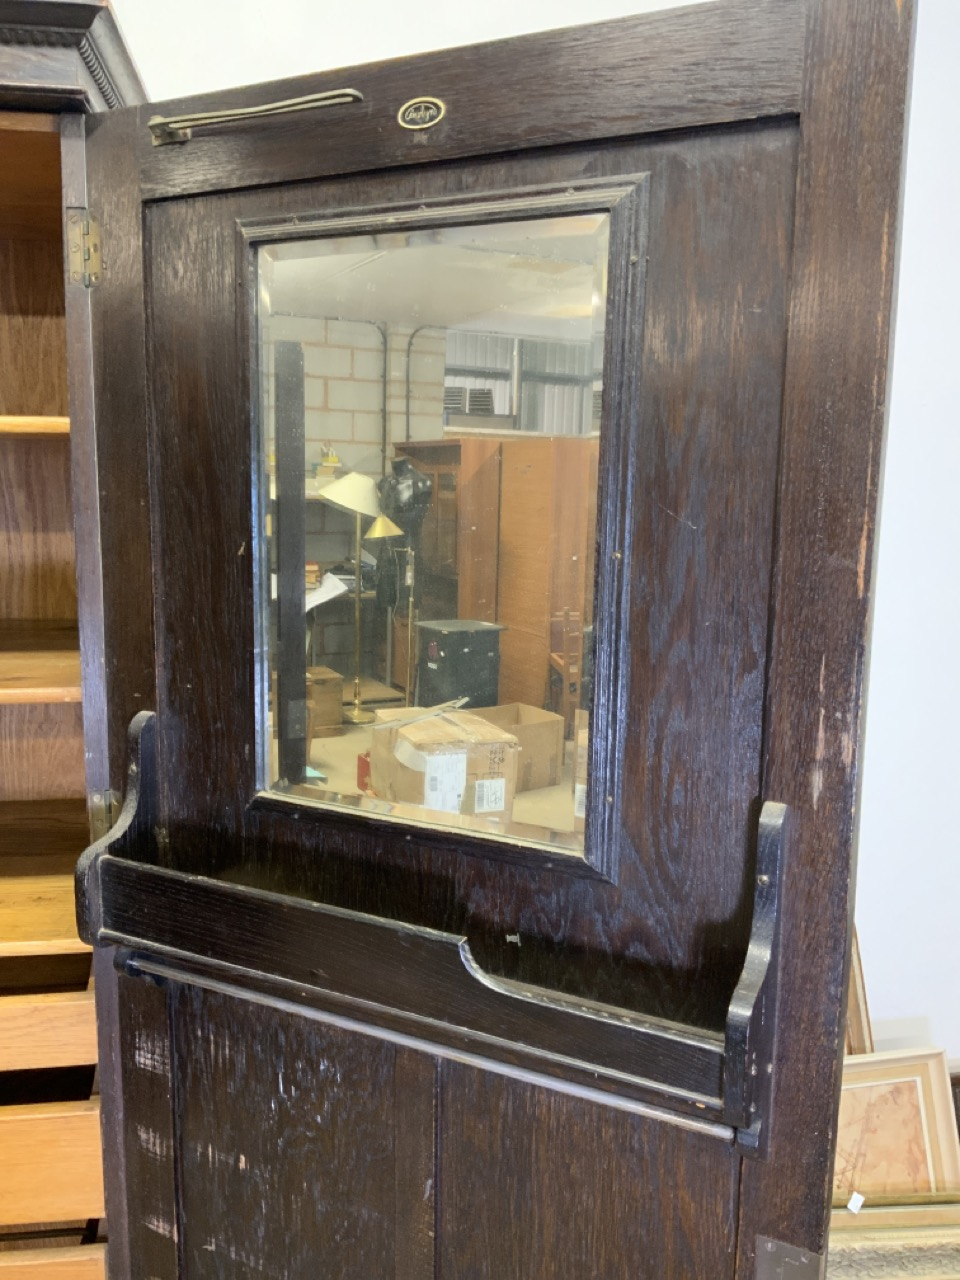 An early 20th century gentleman's oak double wardrobe by Awlyn furniture with fitted shelves, - Image 7 of 10